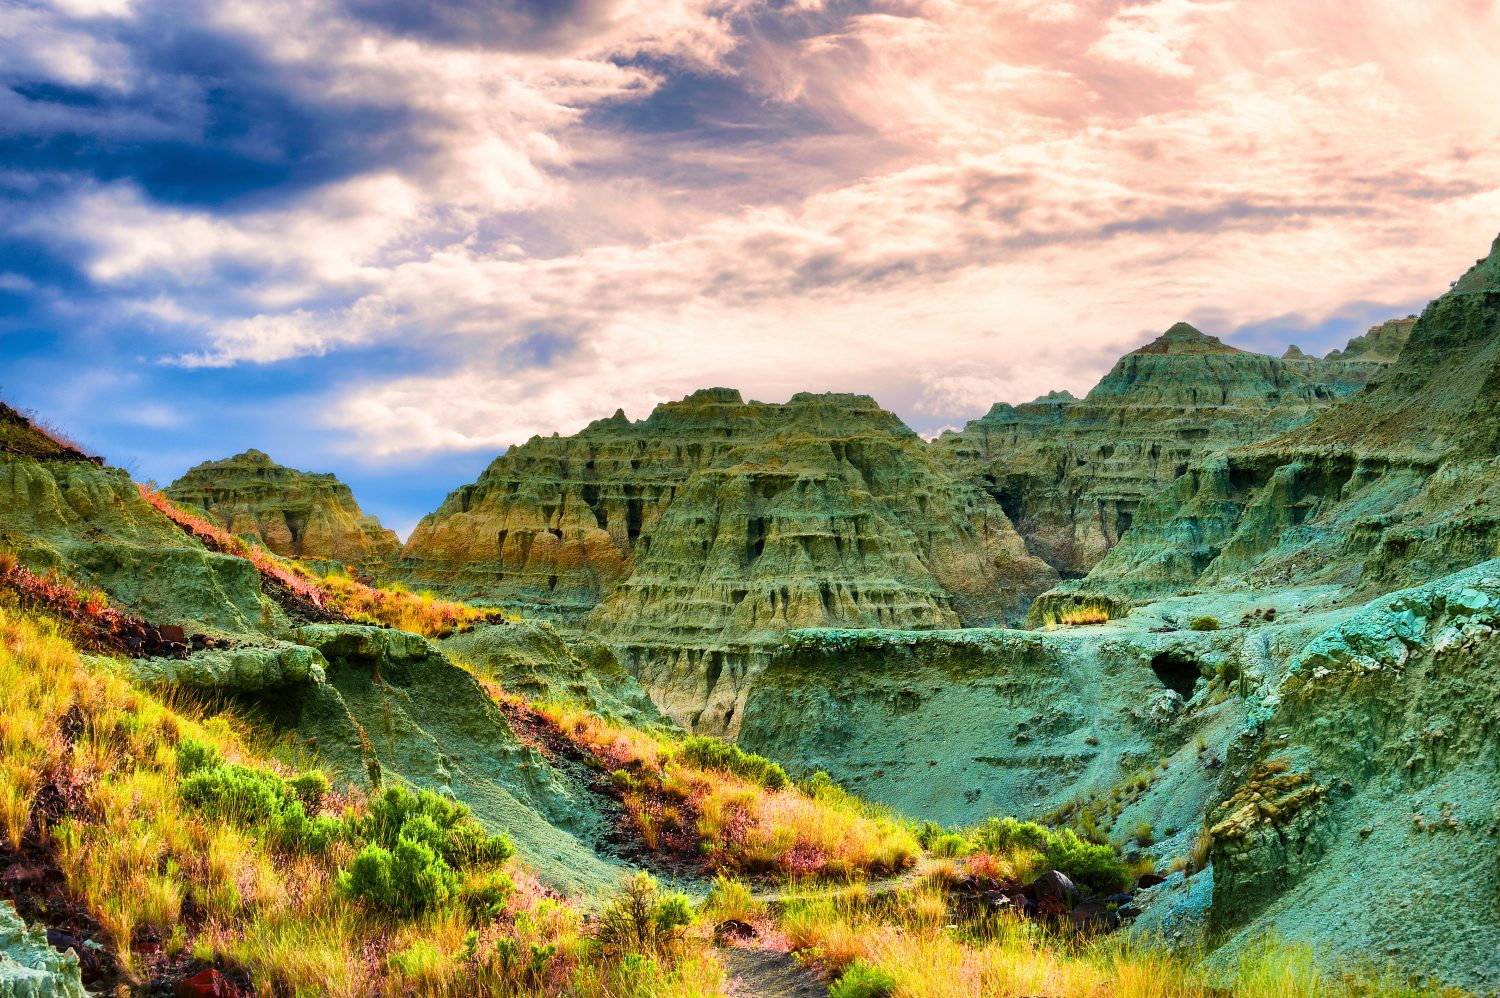 Places to stay near John Day Fossil Bed National Monument